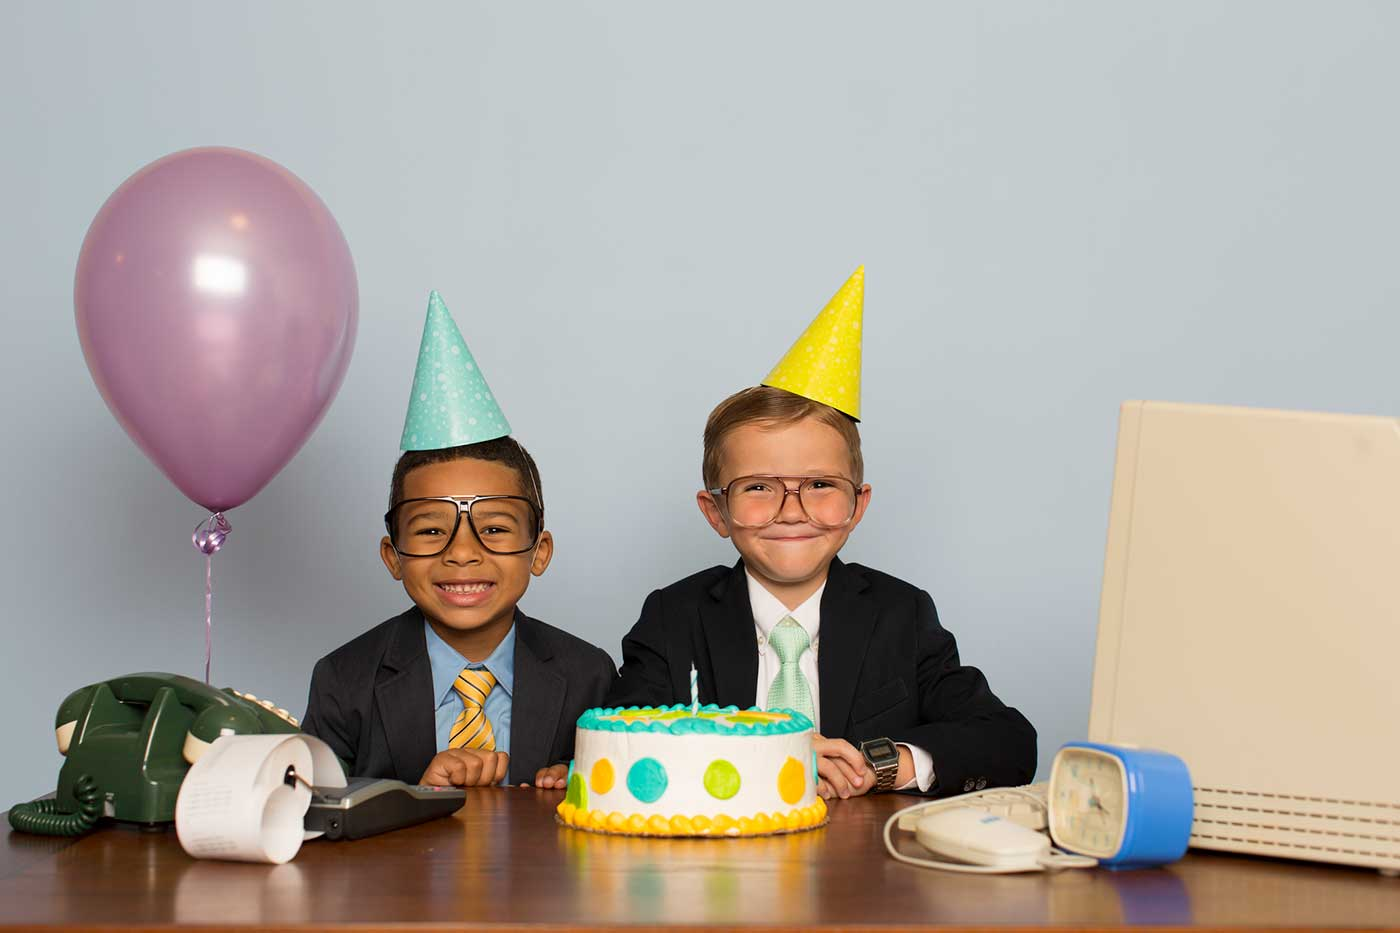 Birthday Poems for Brothers